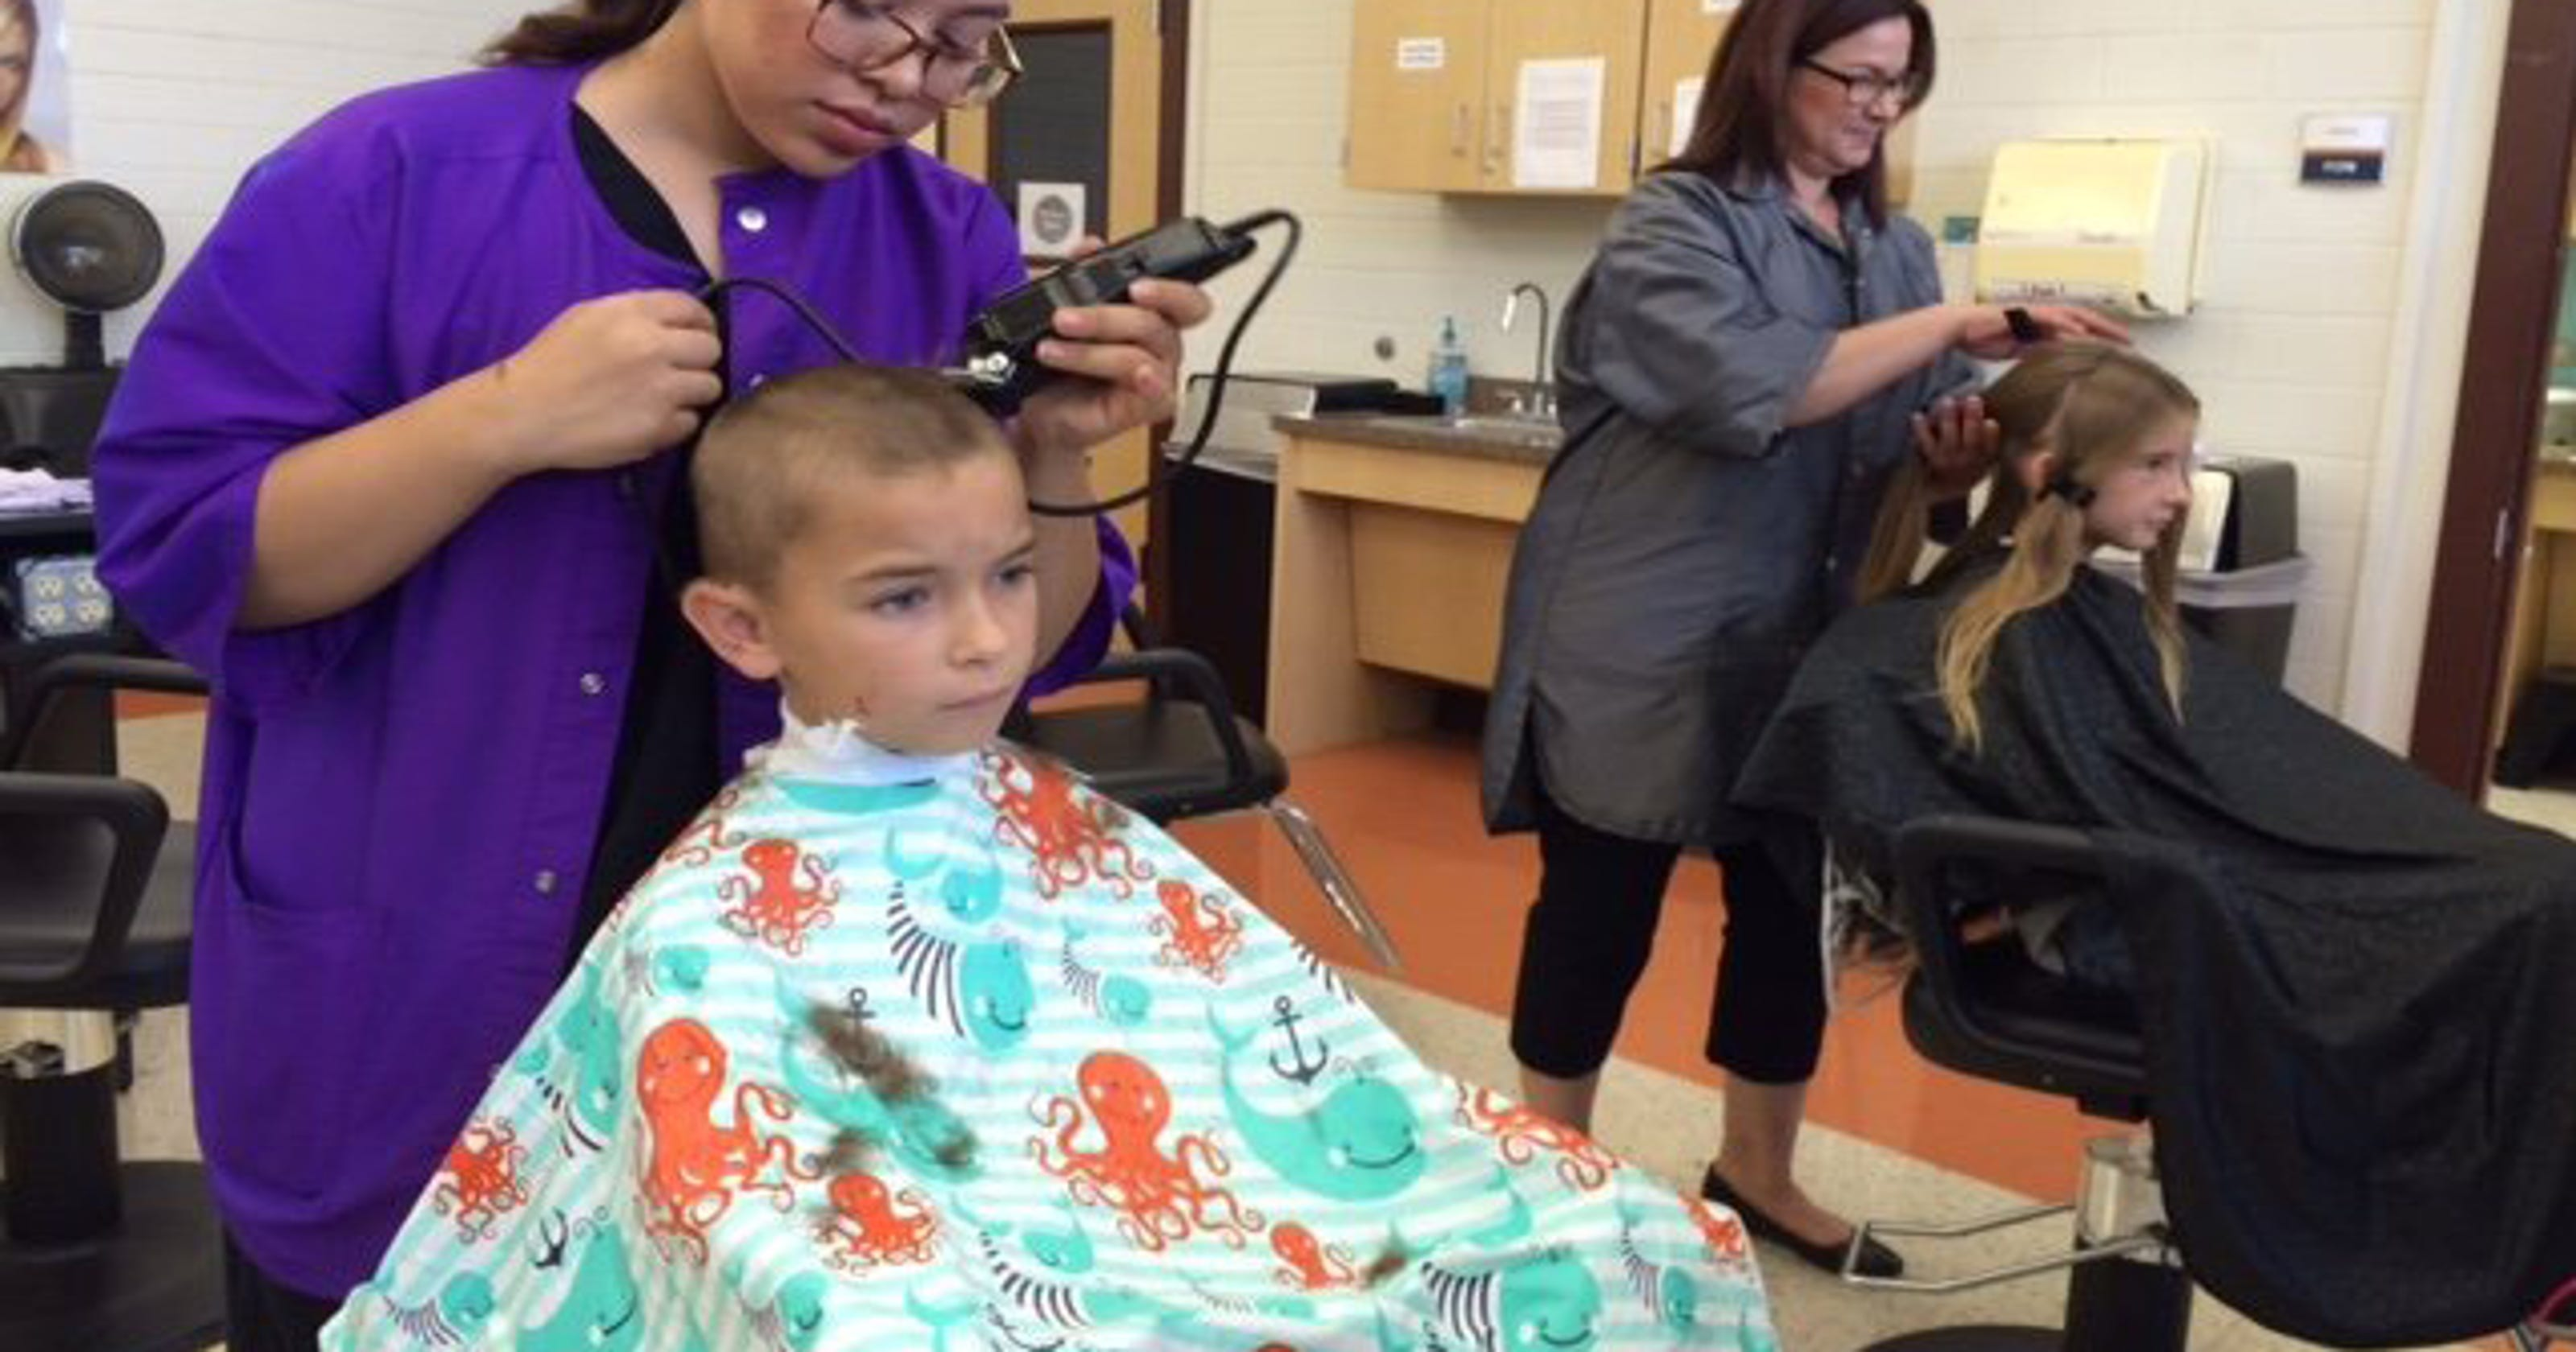 Del Mar Has Free Kids Haircuts Plus Other Tuesday Activities